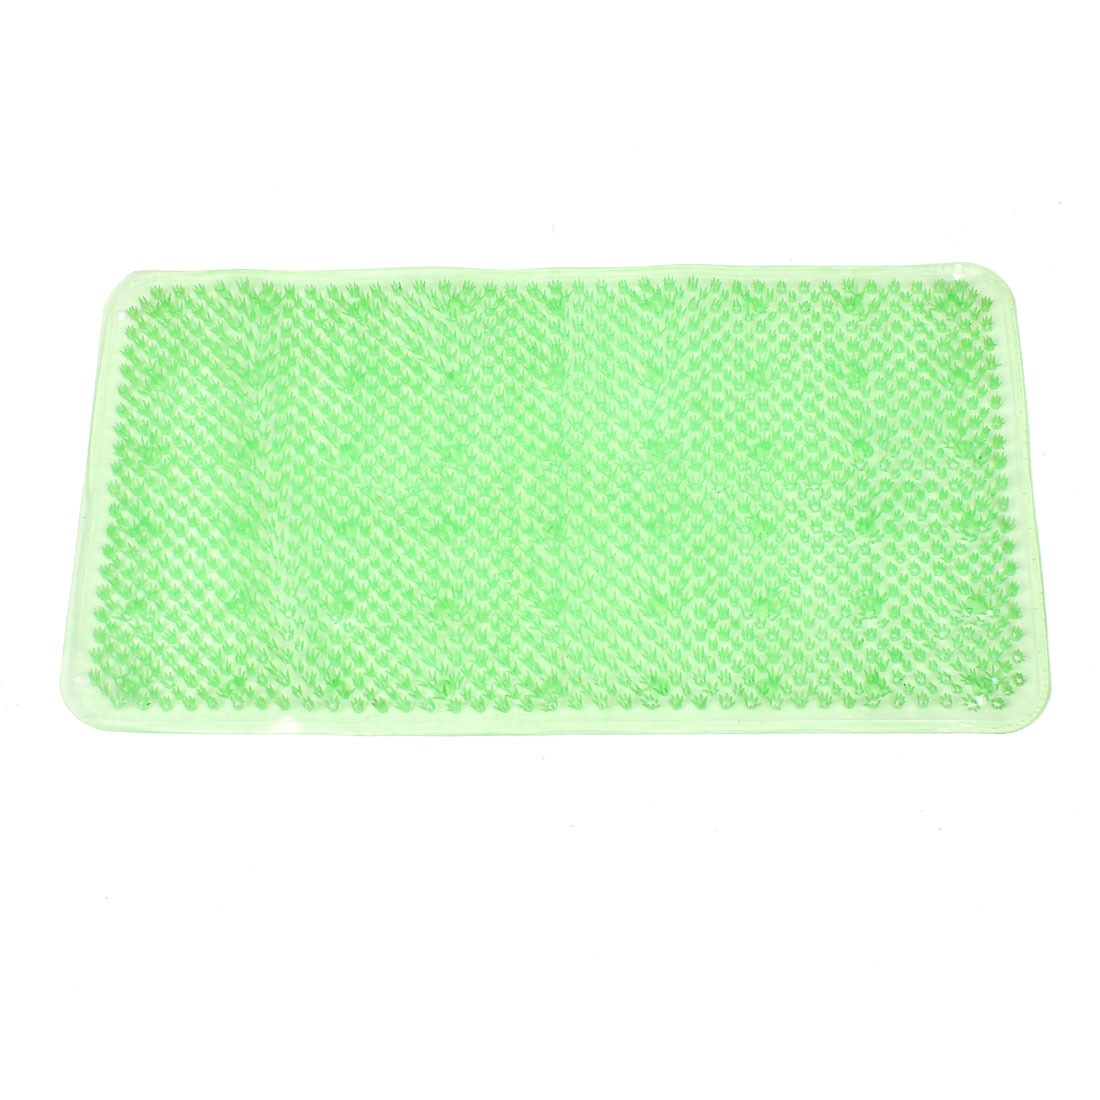 Green Clear Suction Cup Lawn Design Water Absorbent Bathroom Door Floor Pad